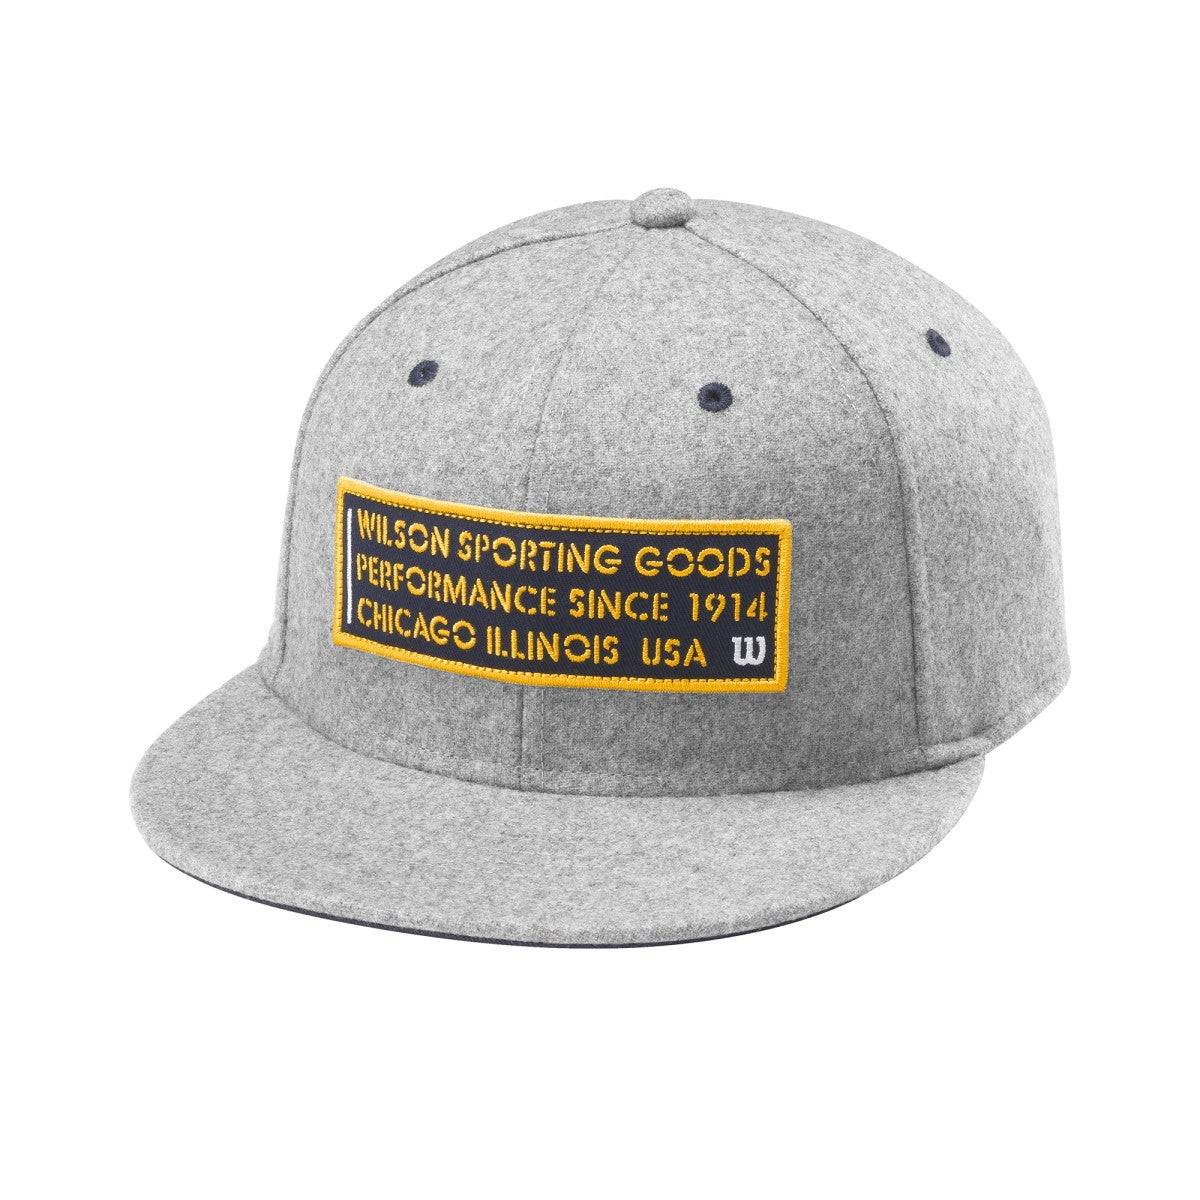 Wilson Since 1914 Hat in Light Gray Heather - Size: One Size Fits Most  - Unisex - Light Gray Heather - Size: One Size Fits Most